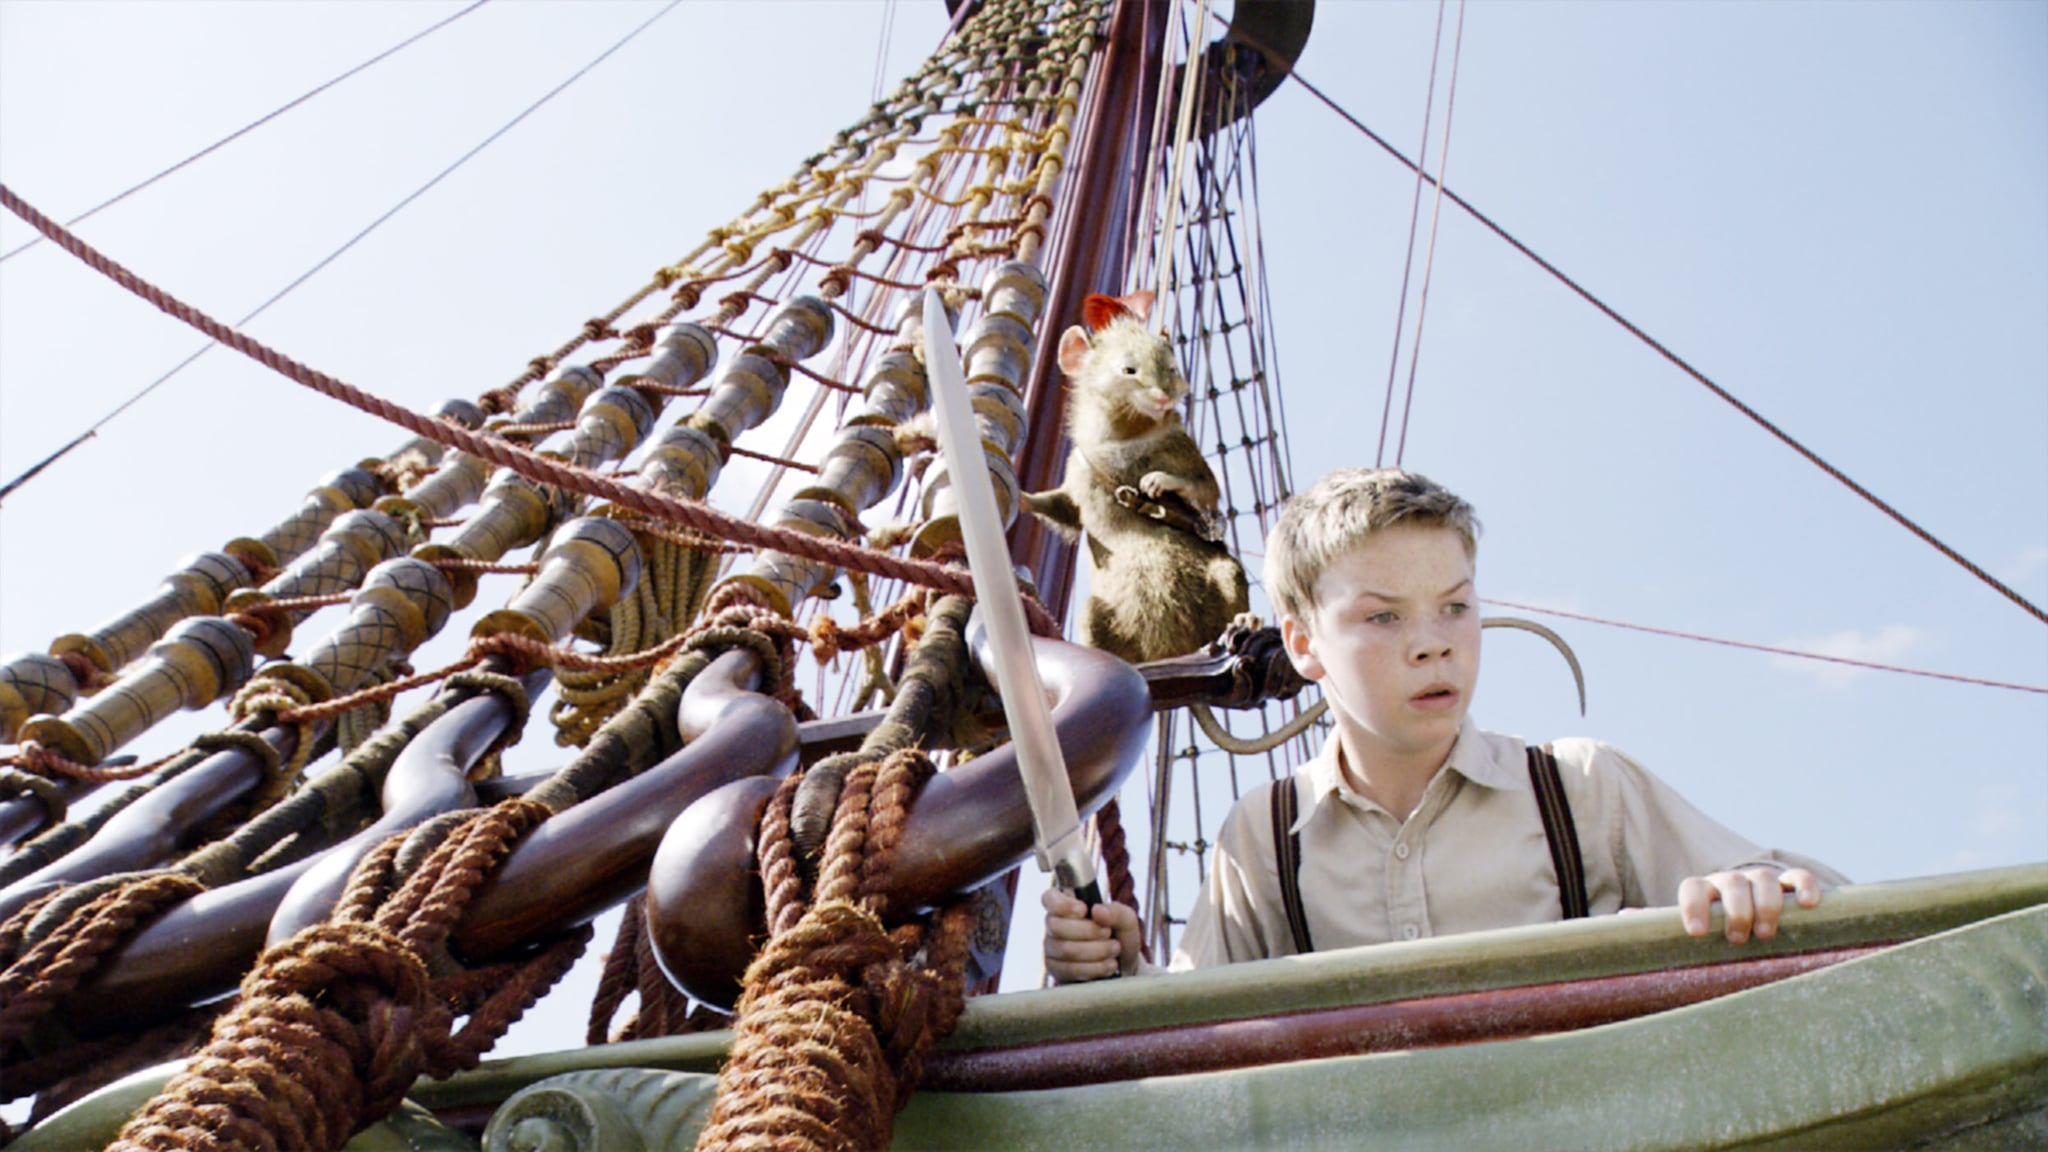 THE CHRONICLES OF NARNIA: THE VOYAGE OF THE DAWN TREADER, Will Poulter, 2010. TM & Twentieth Century Fox Film Corp. All rights reserved/courtesy Everett Collection